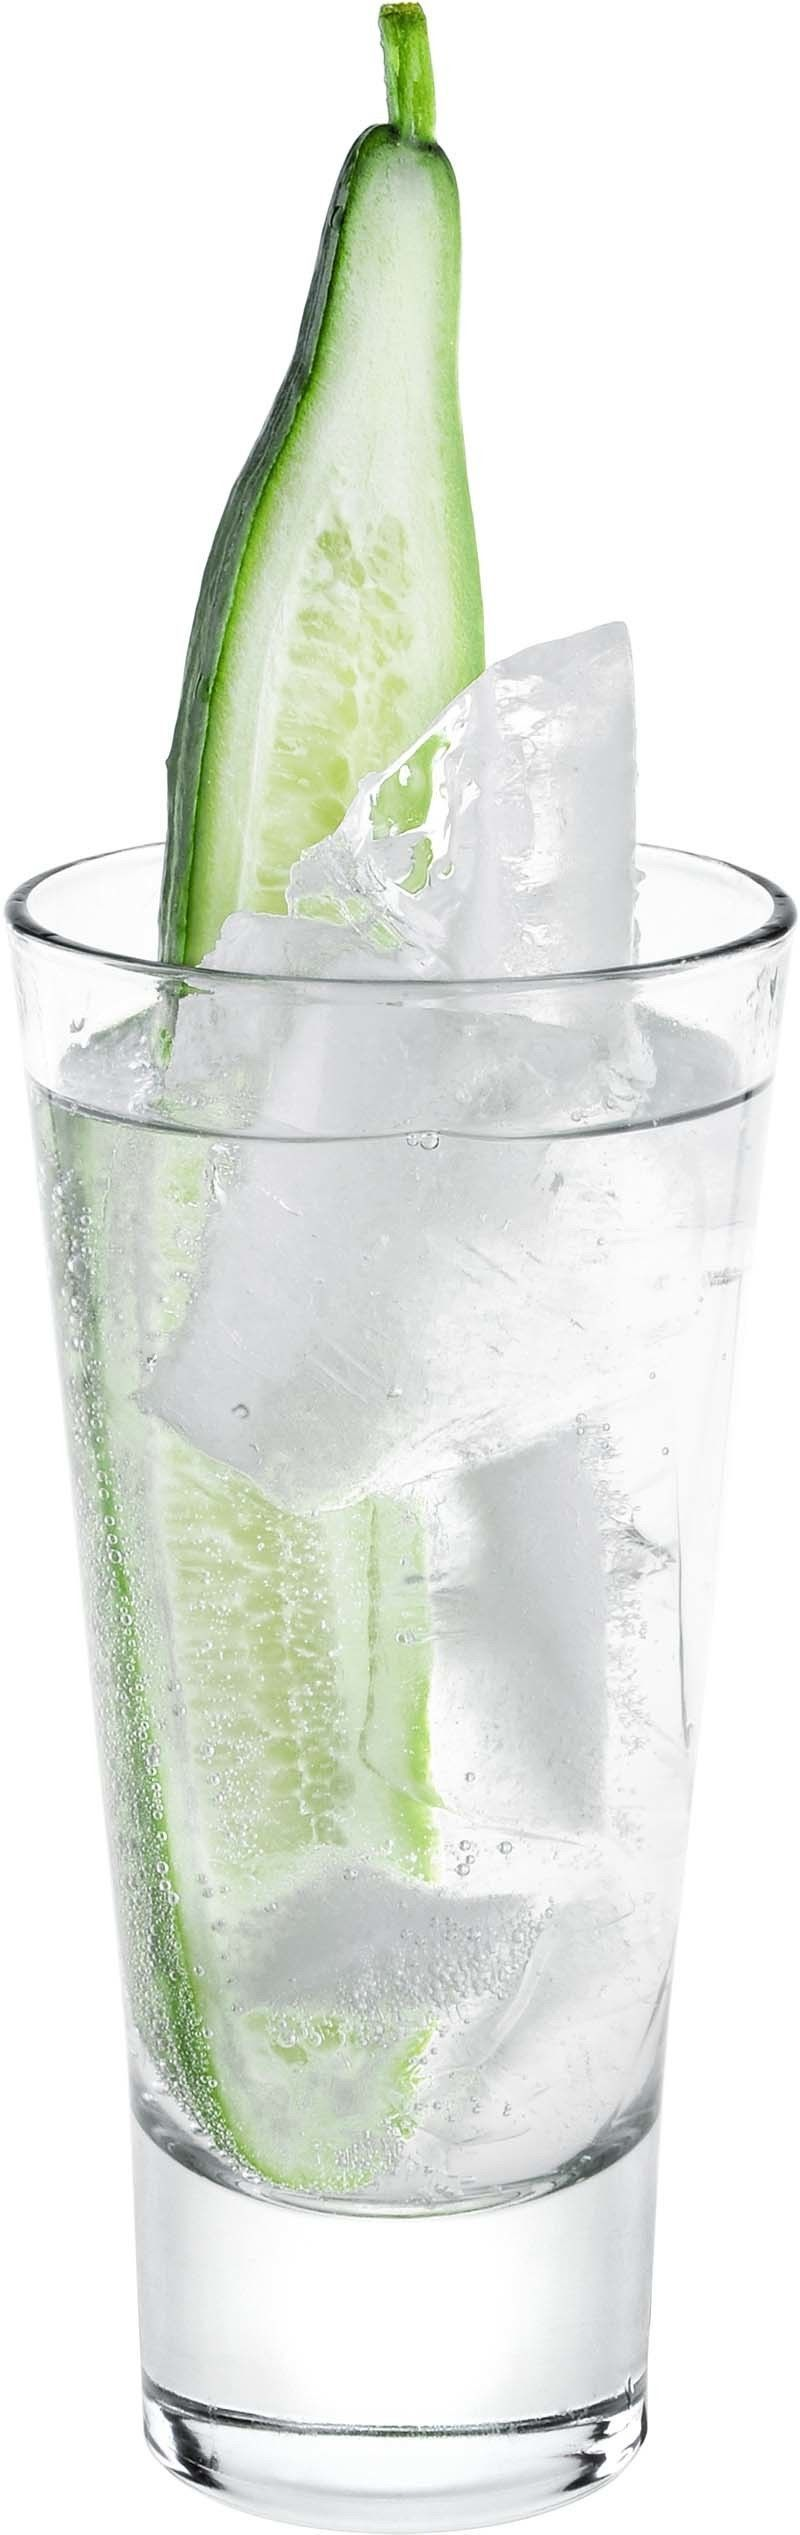 How to Make the Gin and Tonic with Cucumber